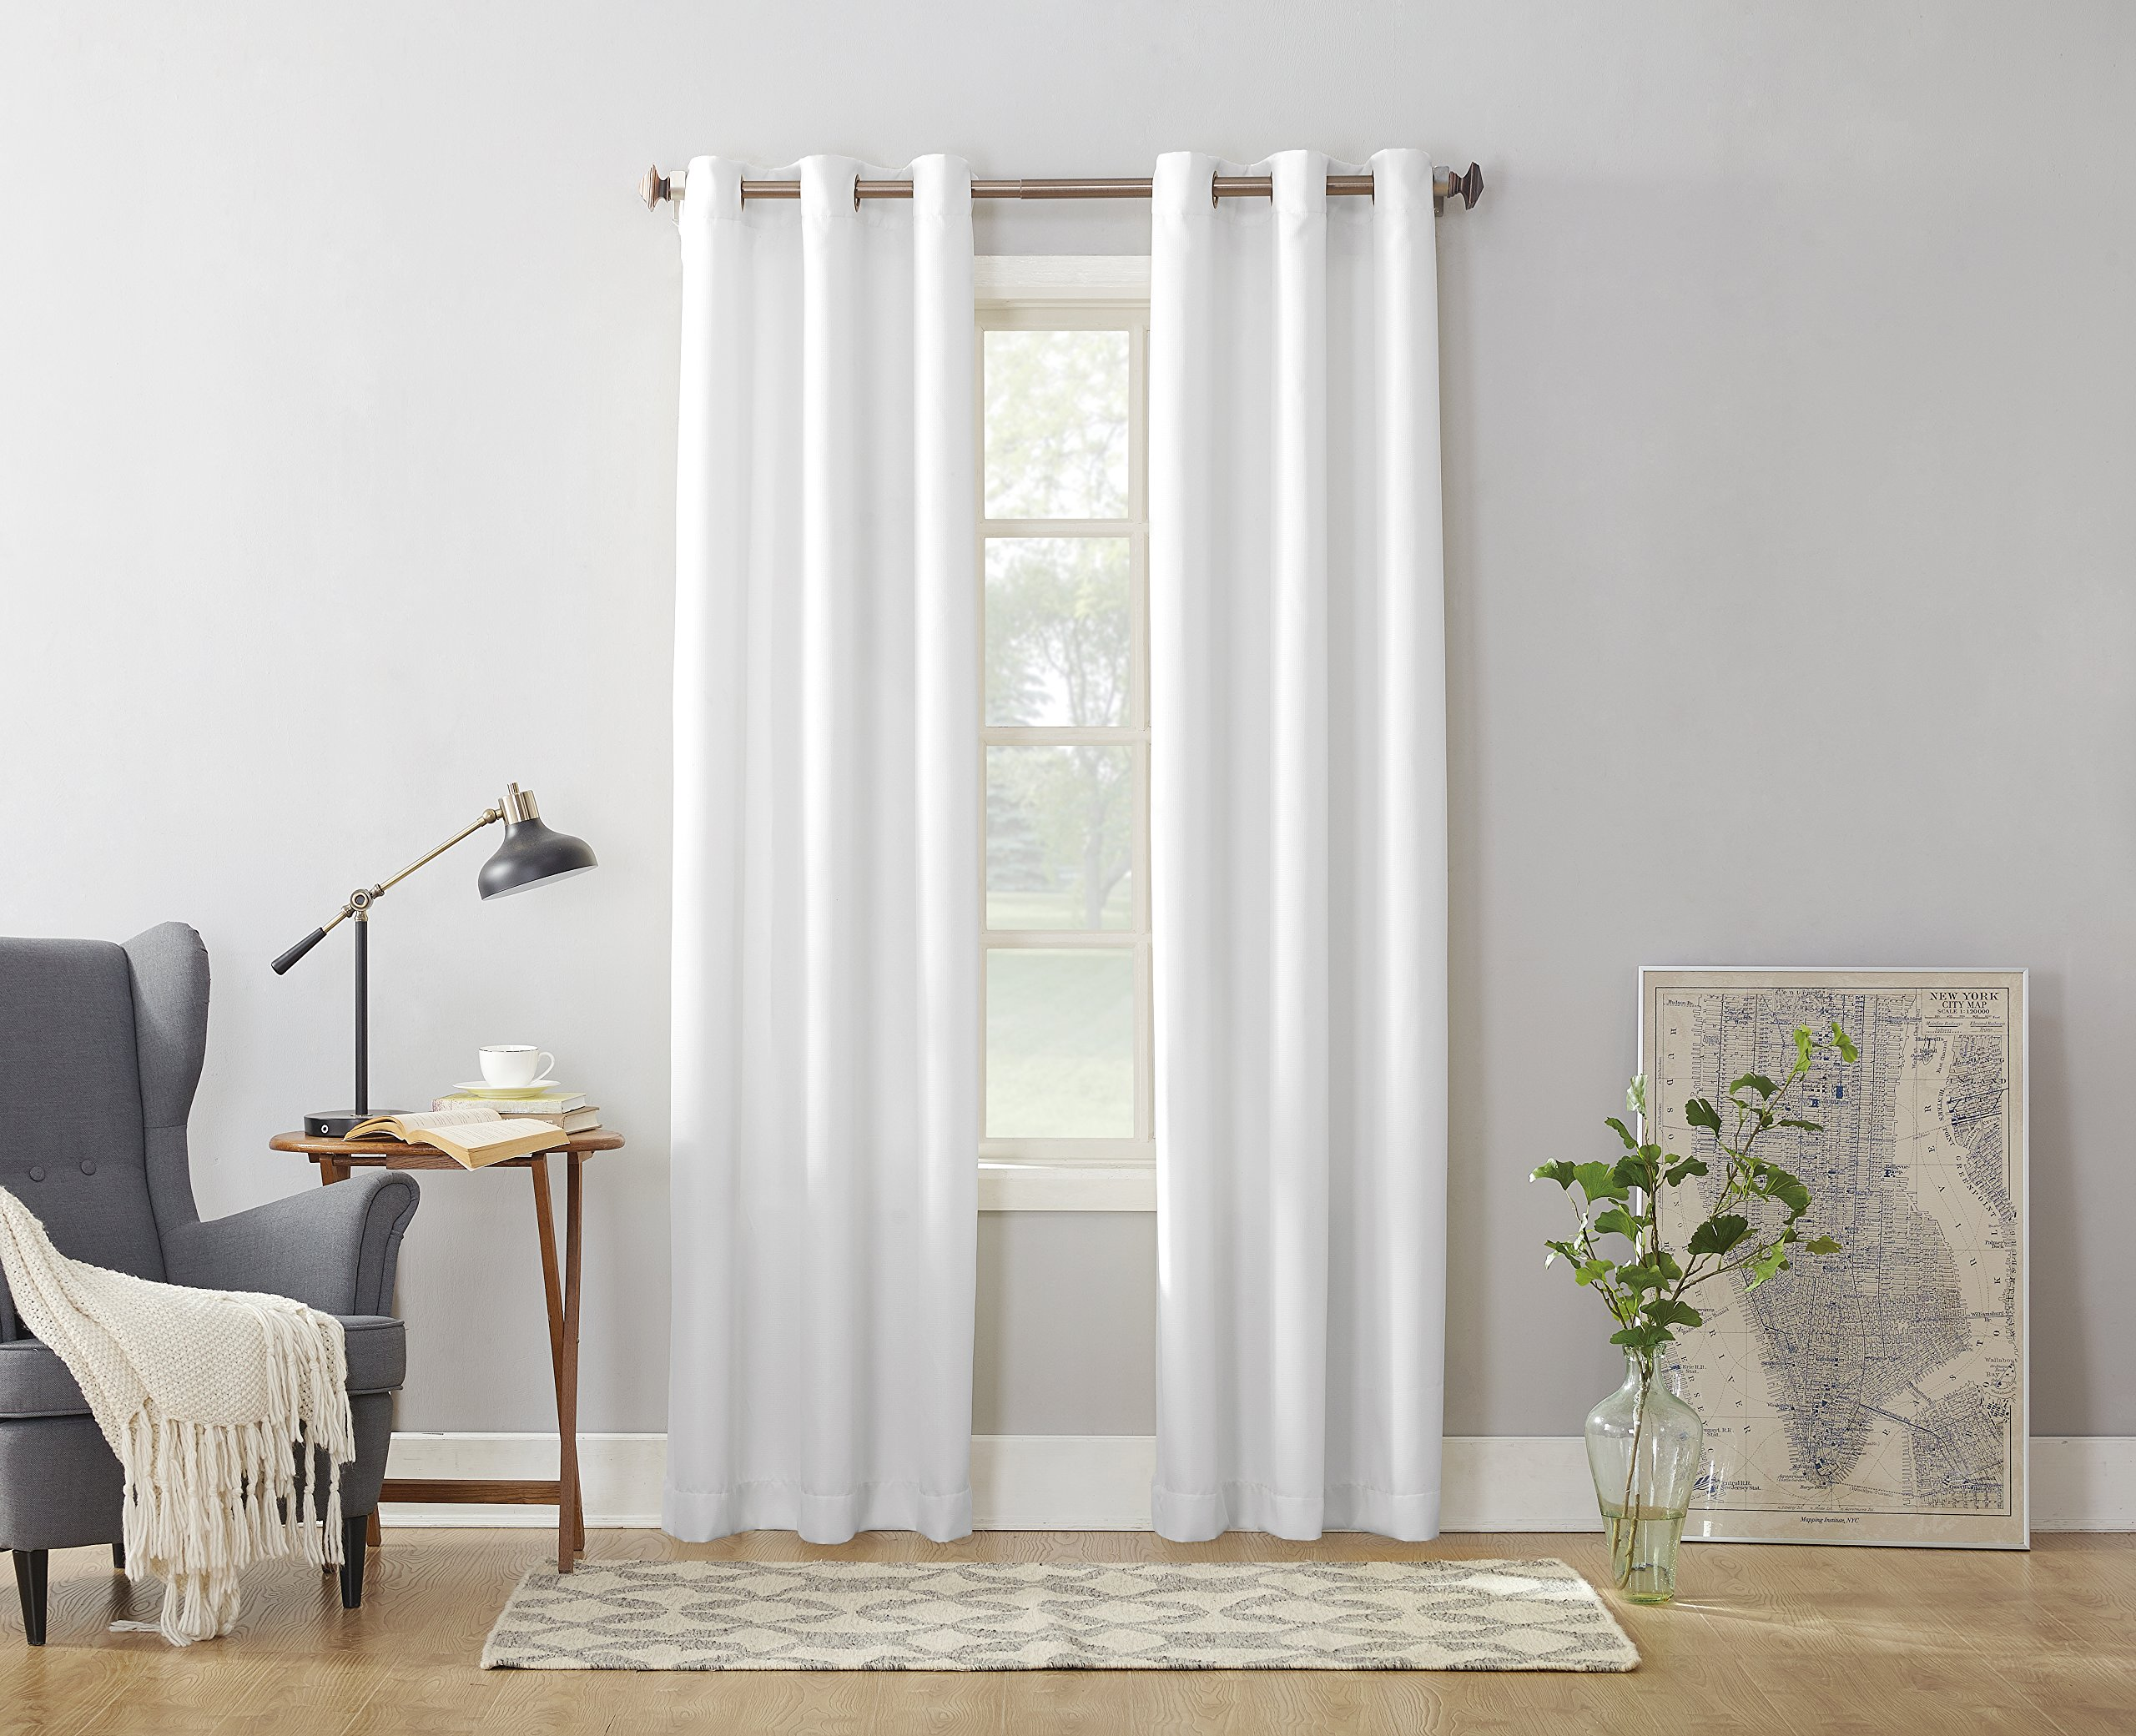 White Living Room Curtains: White Living Room Curtains: Amazon.com